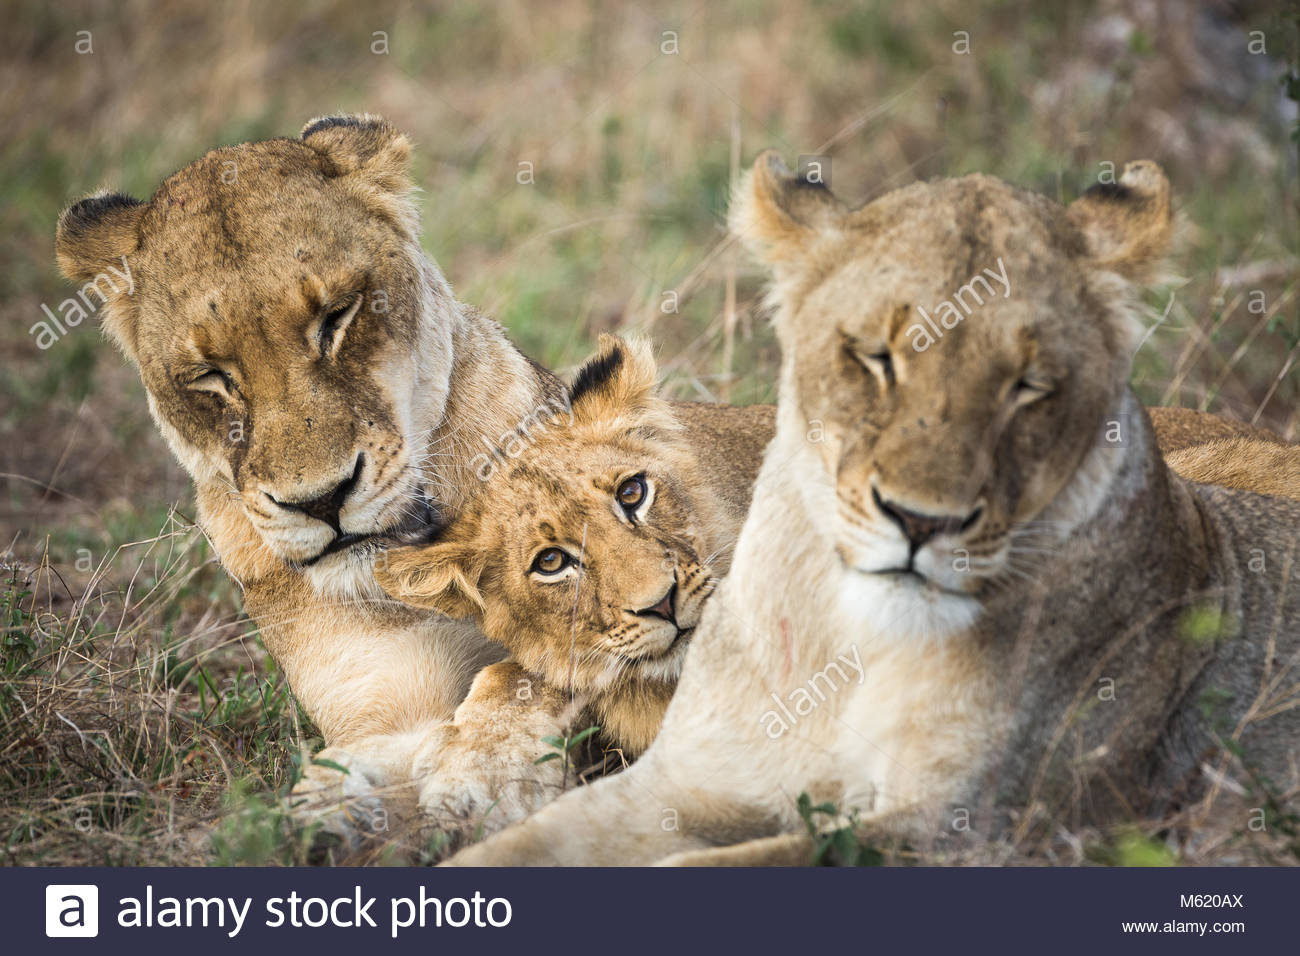 A Lion cub, Panthera leo, resting between two females. - Stock Image